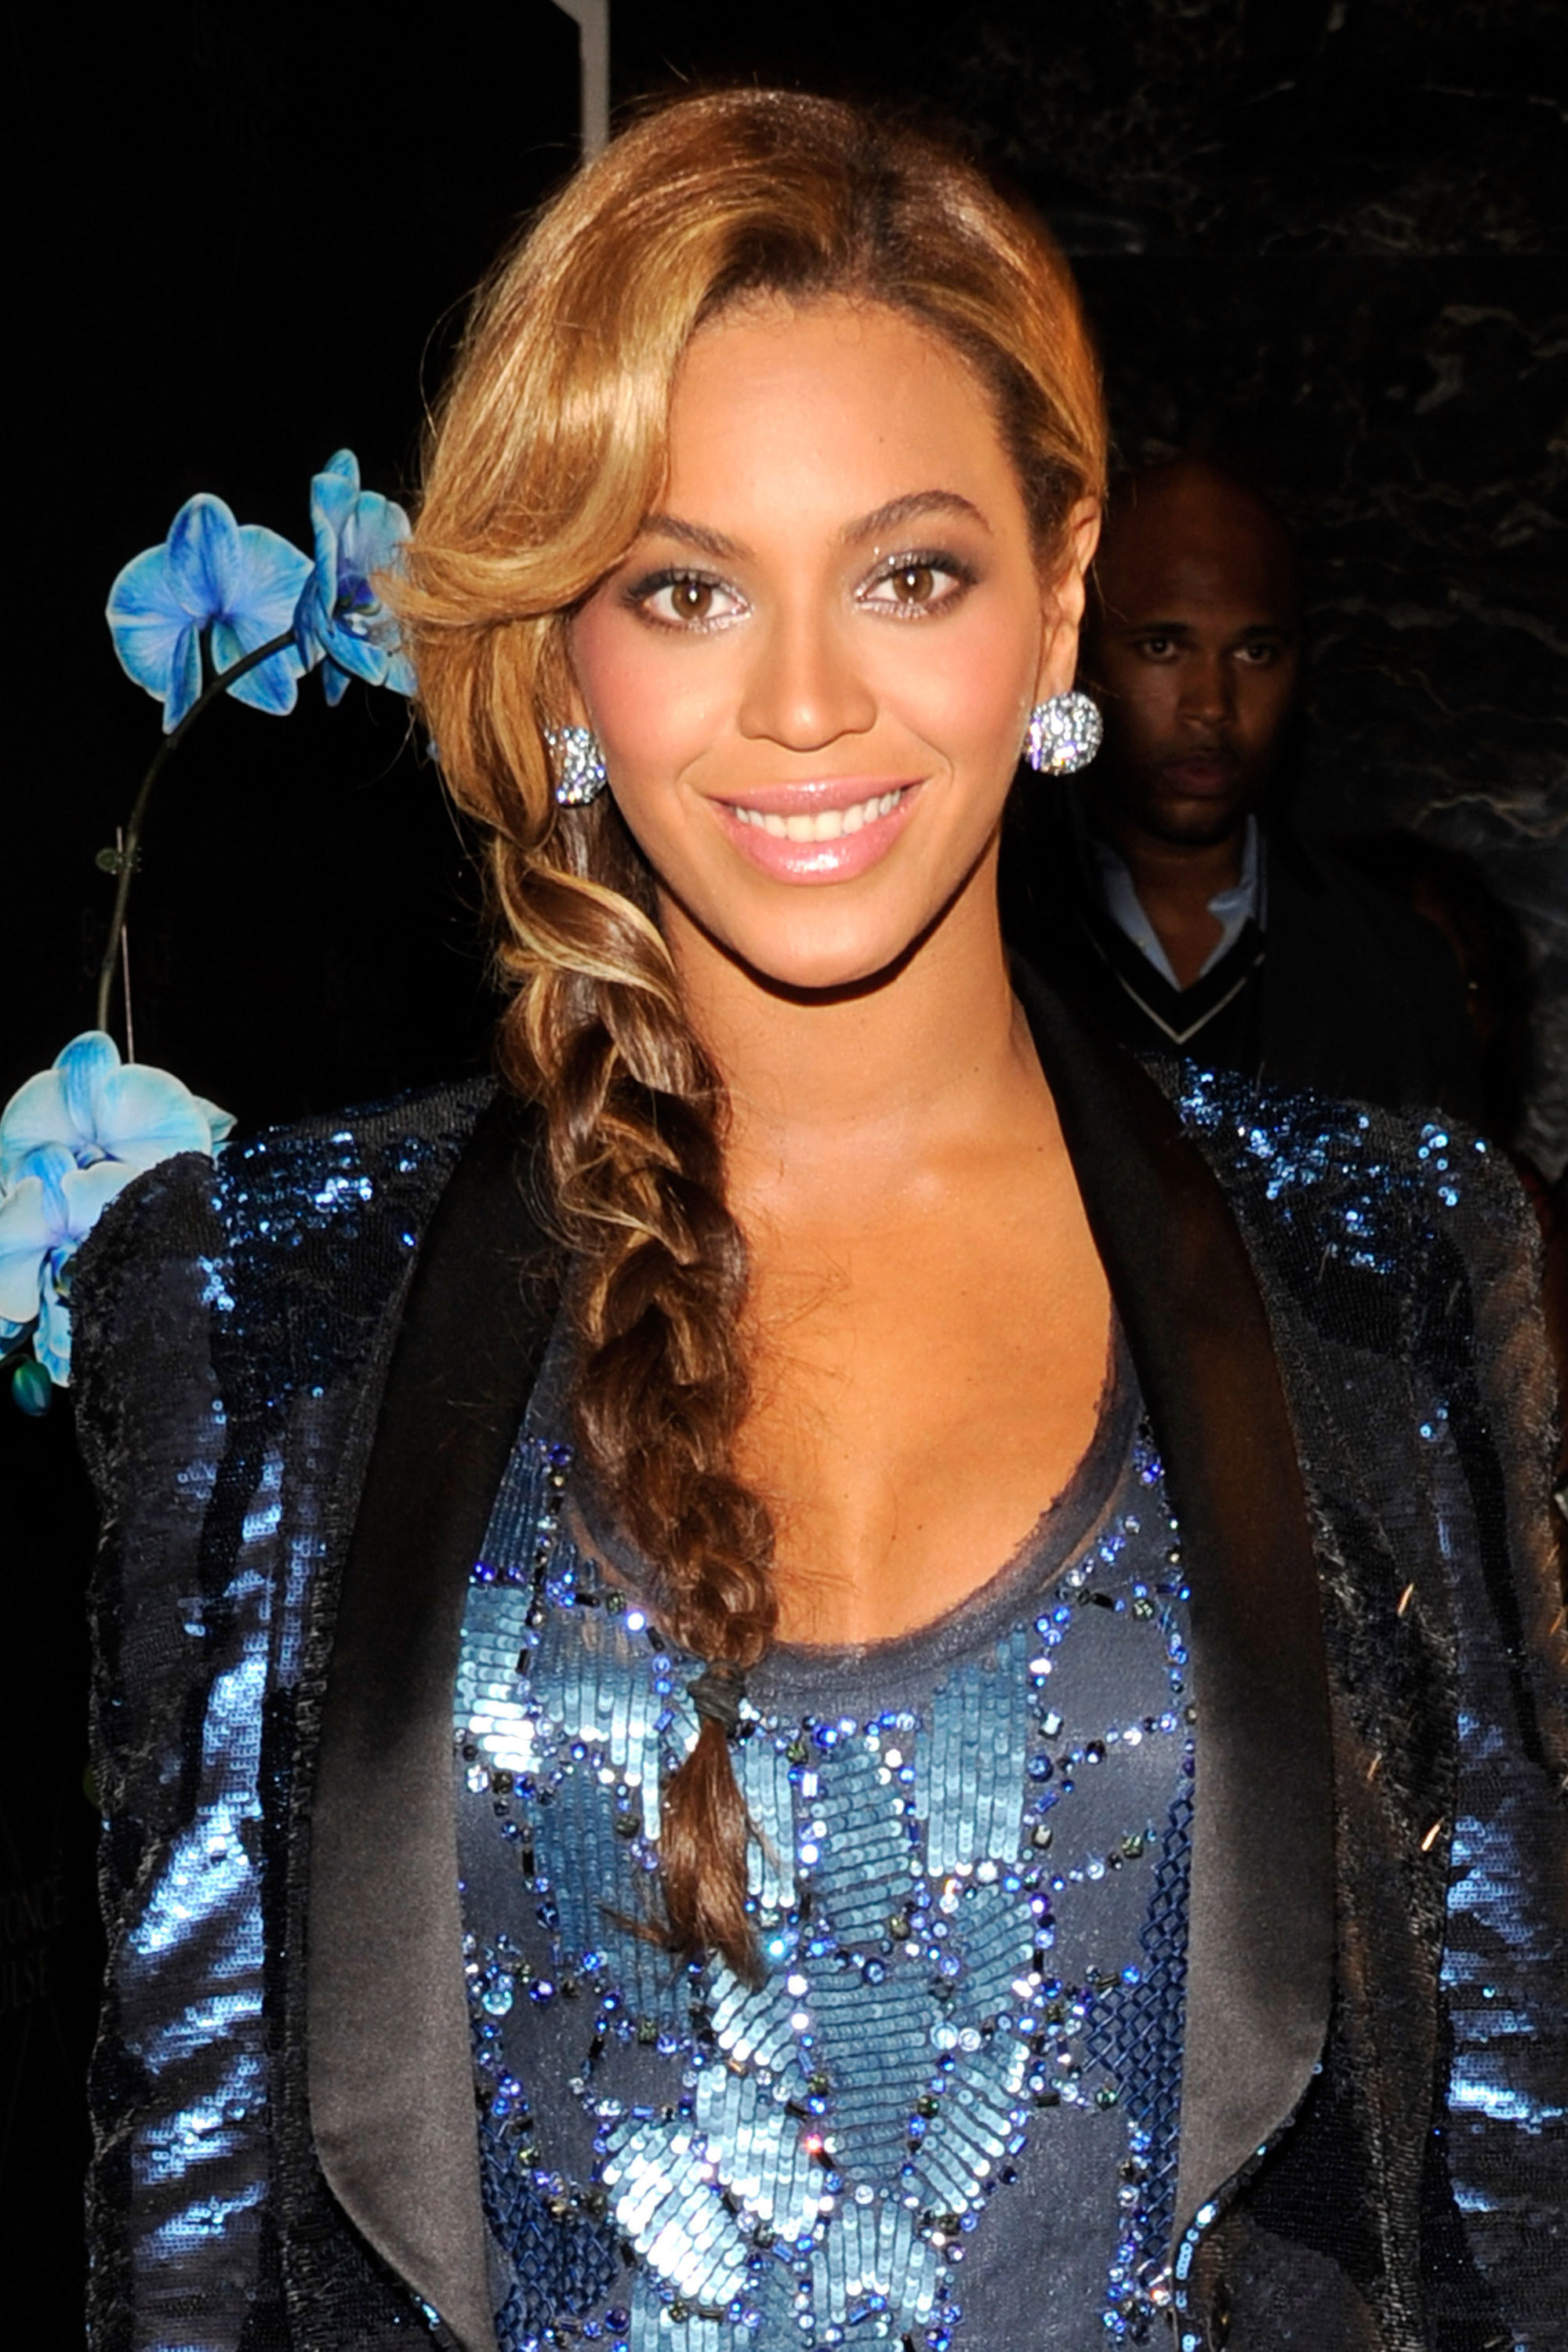 Superb 40 Beyonce Hairstyles Beyonce39S Real Hair Long Hair And Short Short Hairstyles For Black Women Fulllsitofus